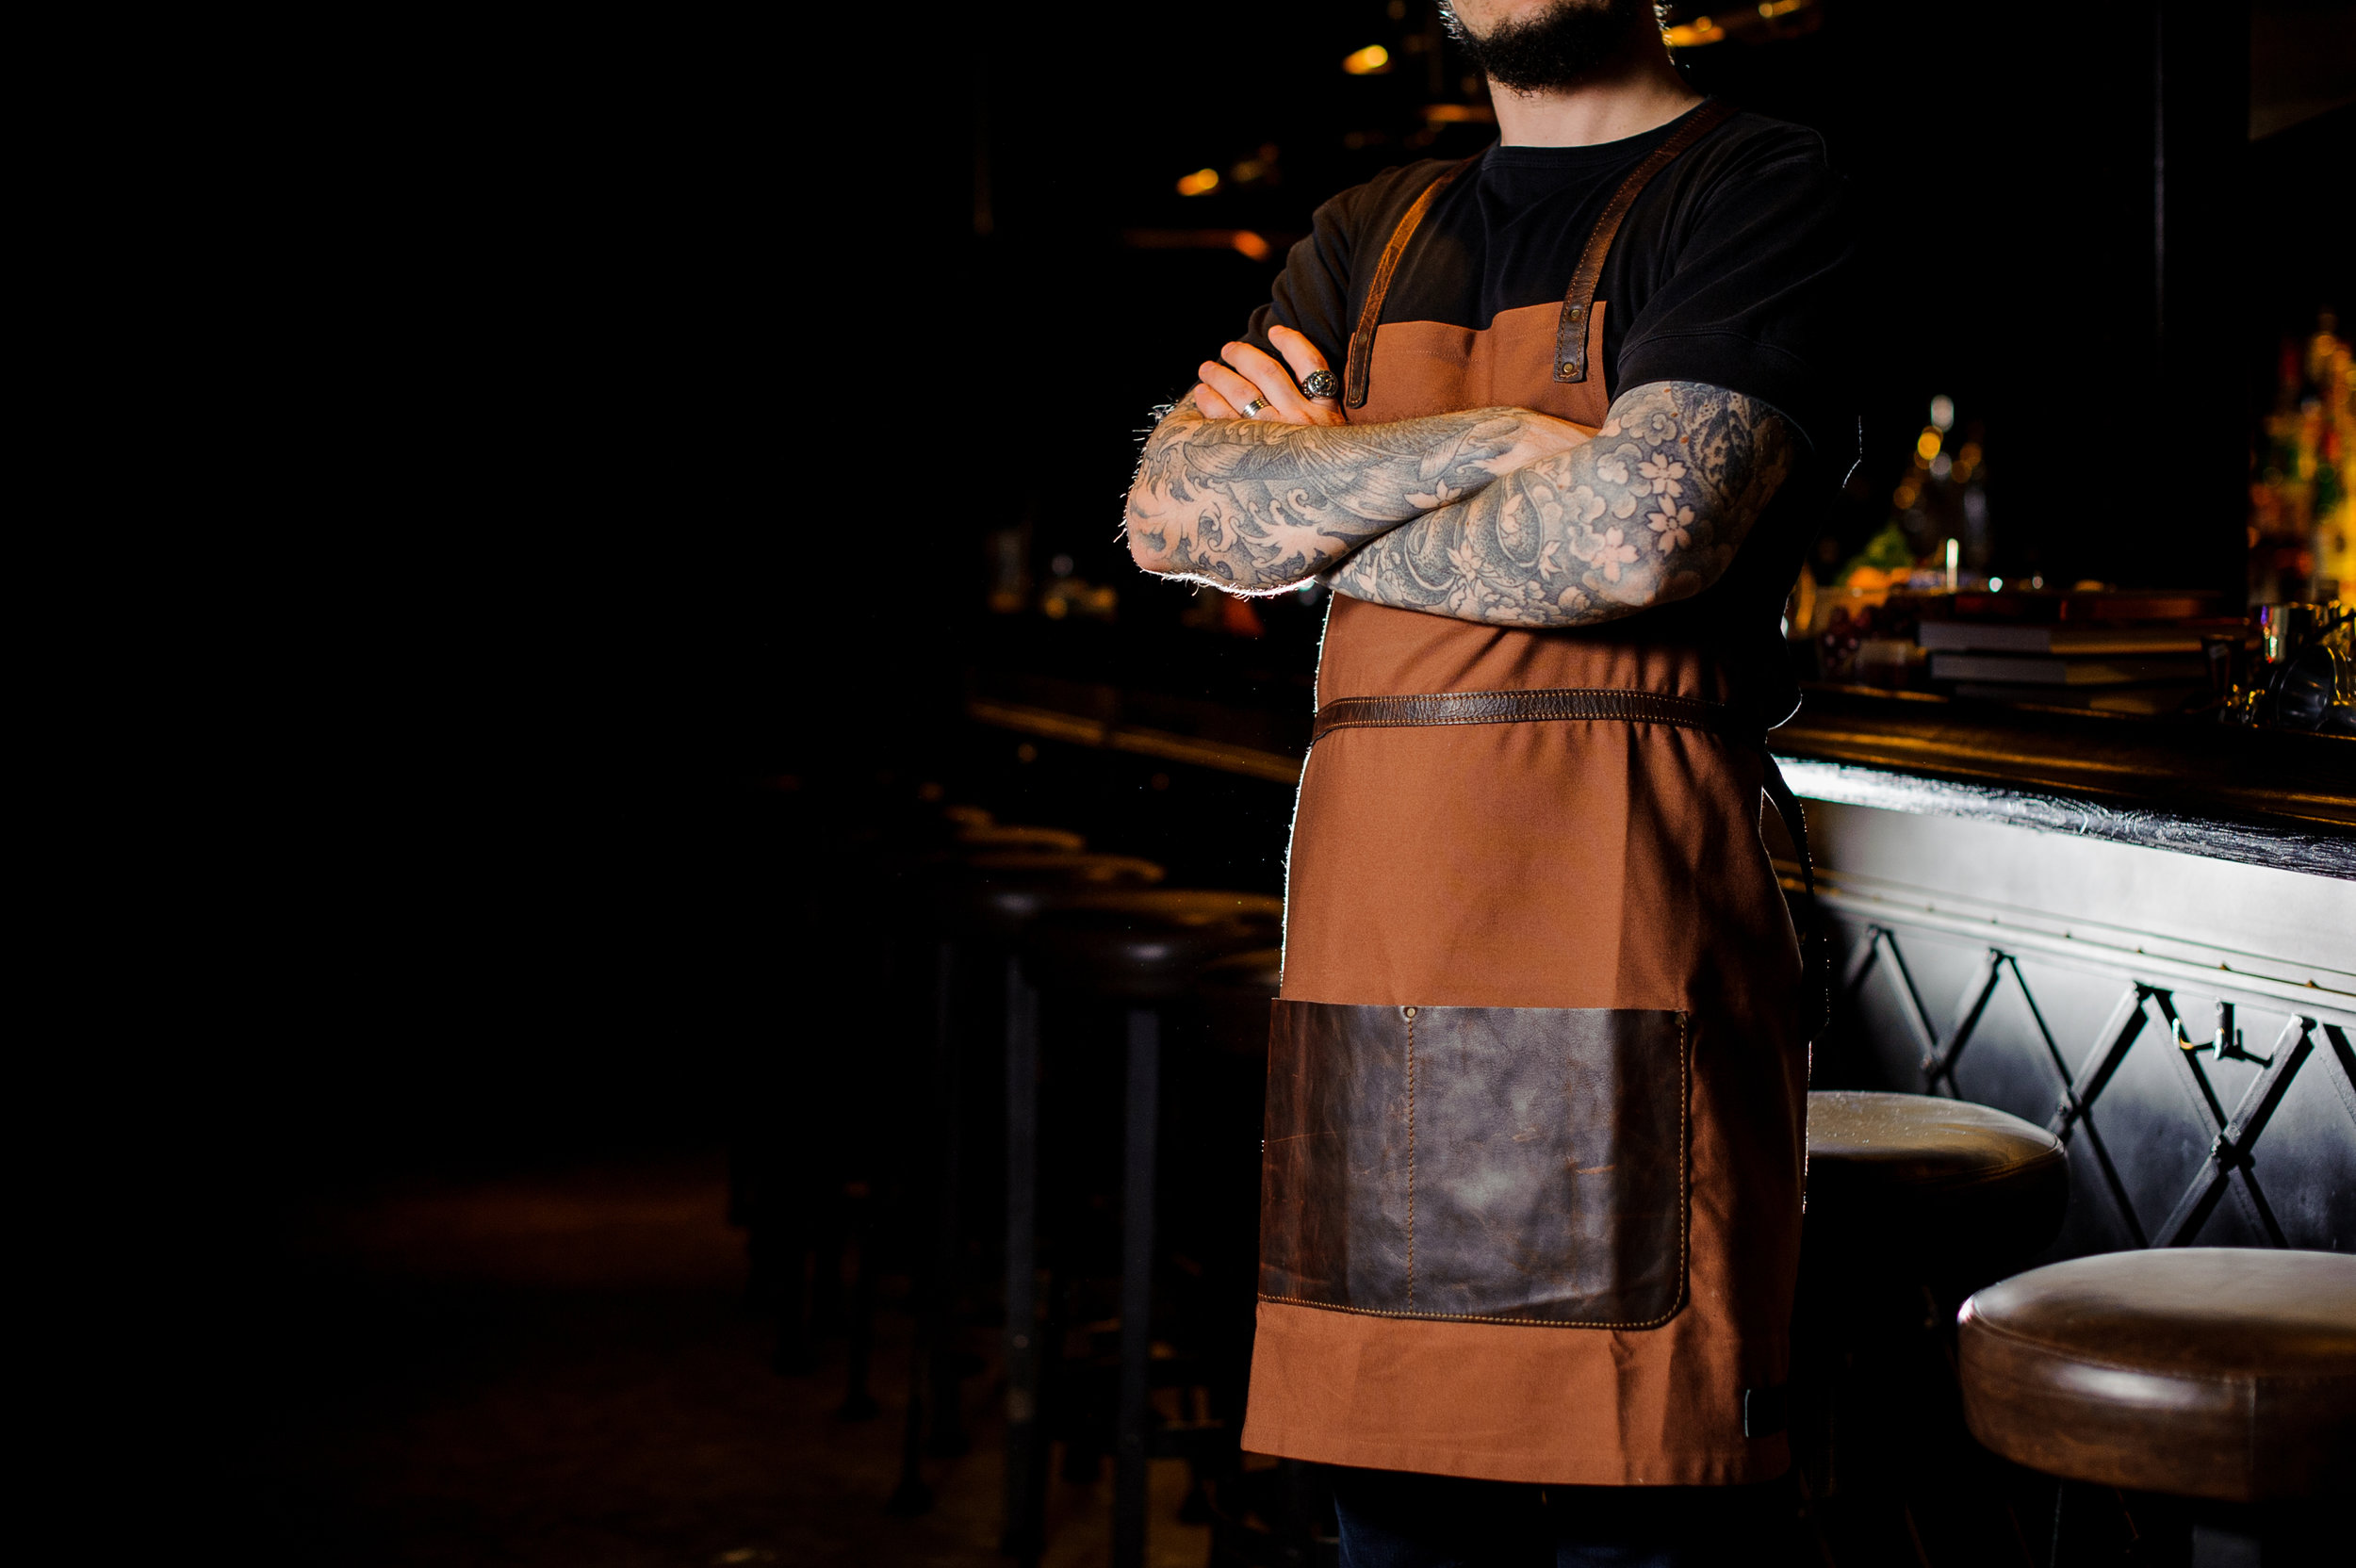 Bartender Clothing - Bartender Clothing Accessories and Aprons